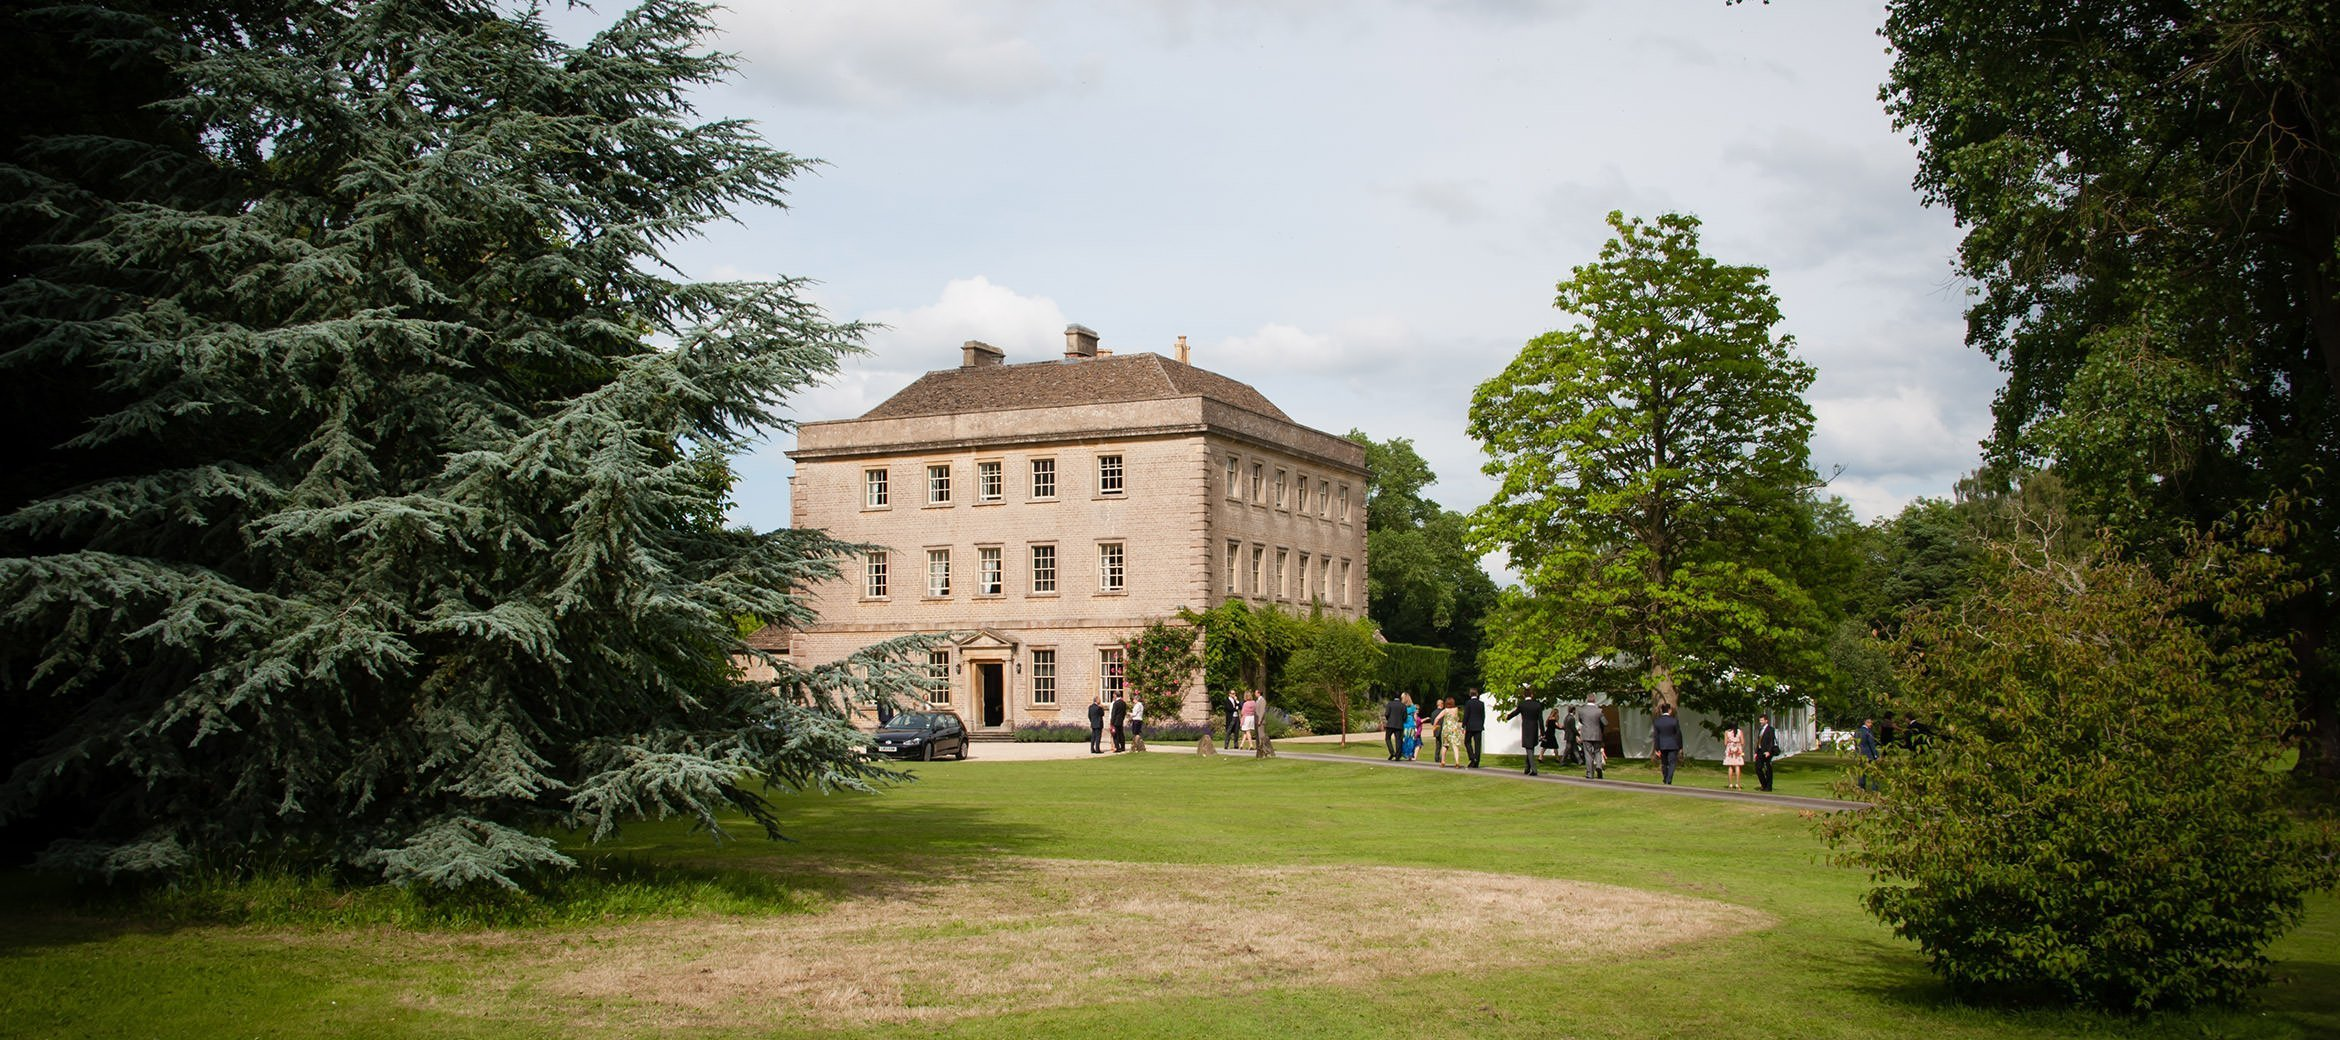 langley park weddings amp events luxury cotswold rentals